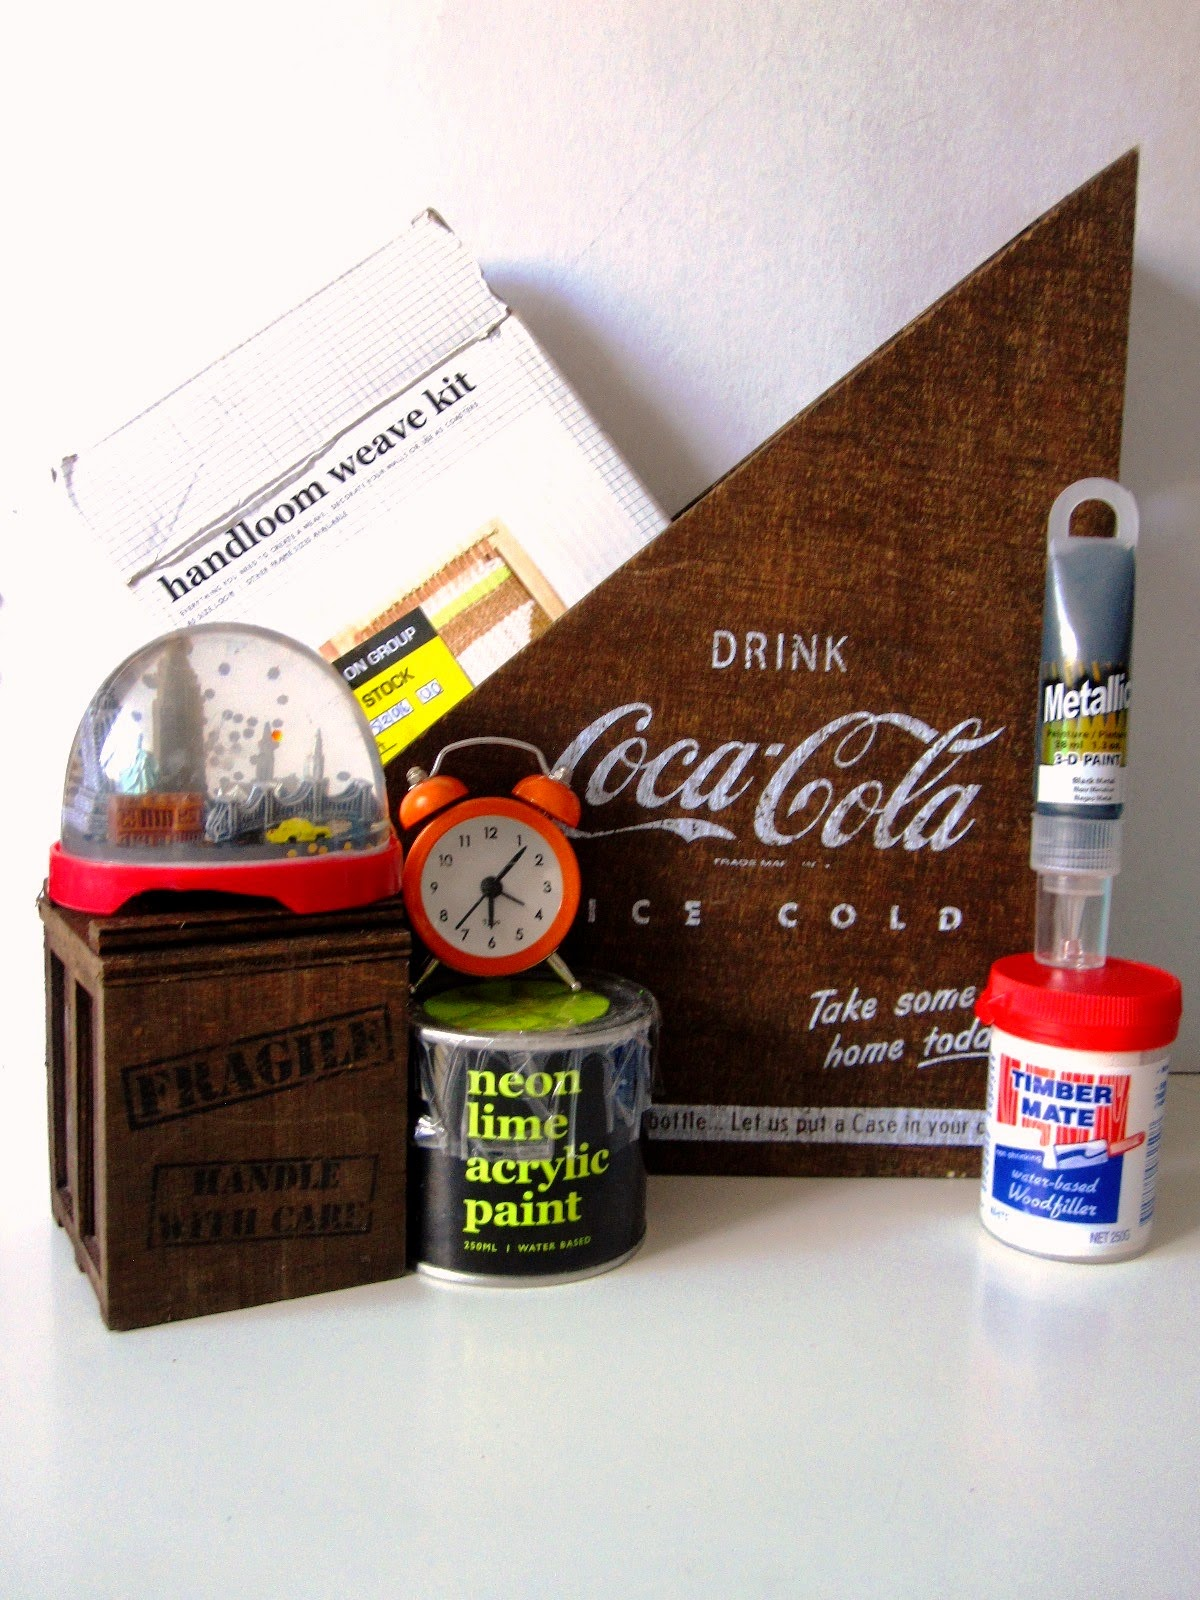 A selection of items from Typo (including a wooden Coca Cola magazine holder,a handlloom weave kit, a snow dome, tin of neon lime paint and a small orange alarm clock, Plus a small container of wood filler and a tube of  3D paint.